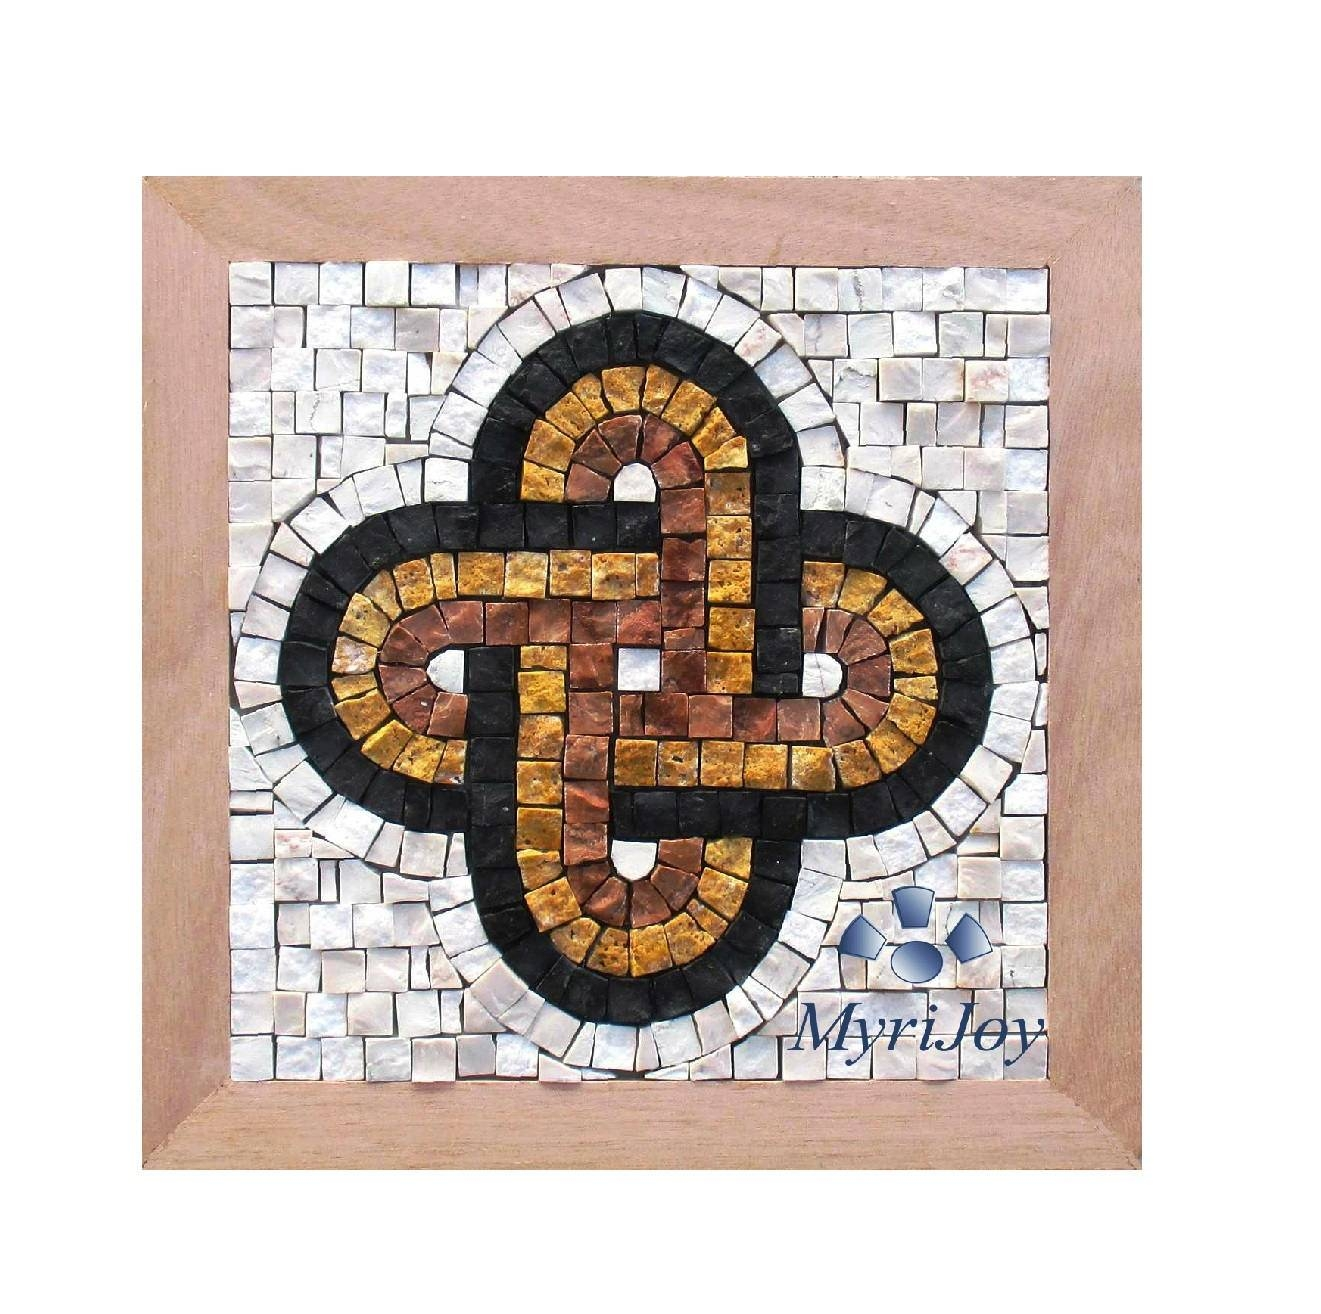 "Anniversary Diy Gift Mosaic Kit Solomon's Knot 9""x9"" Mosaic Wall Pertaining To Newest Mosaic Art Kits For Adults (View 16 of 20)"